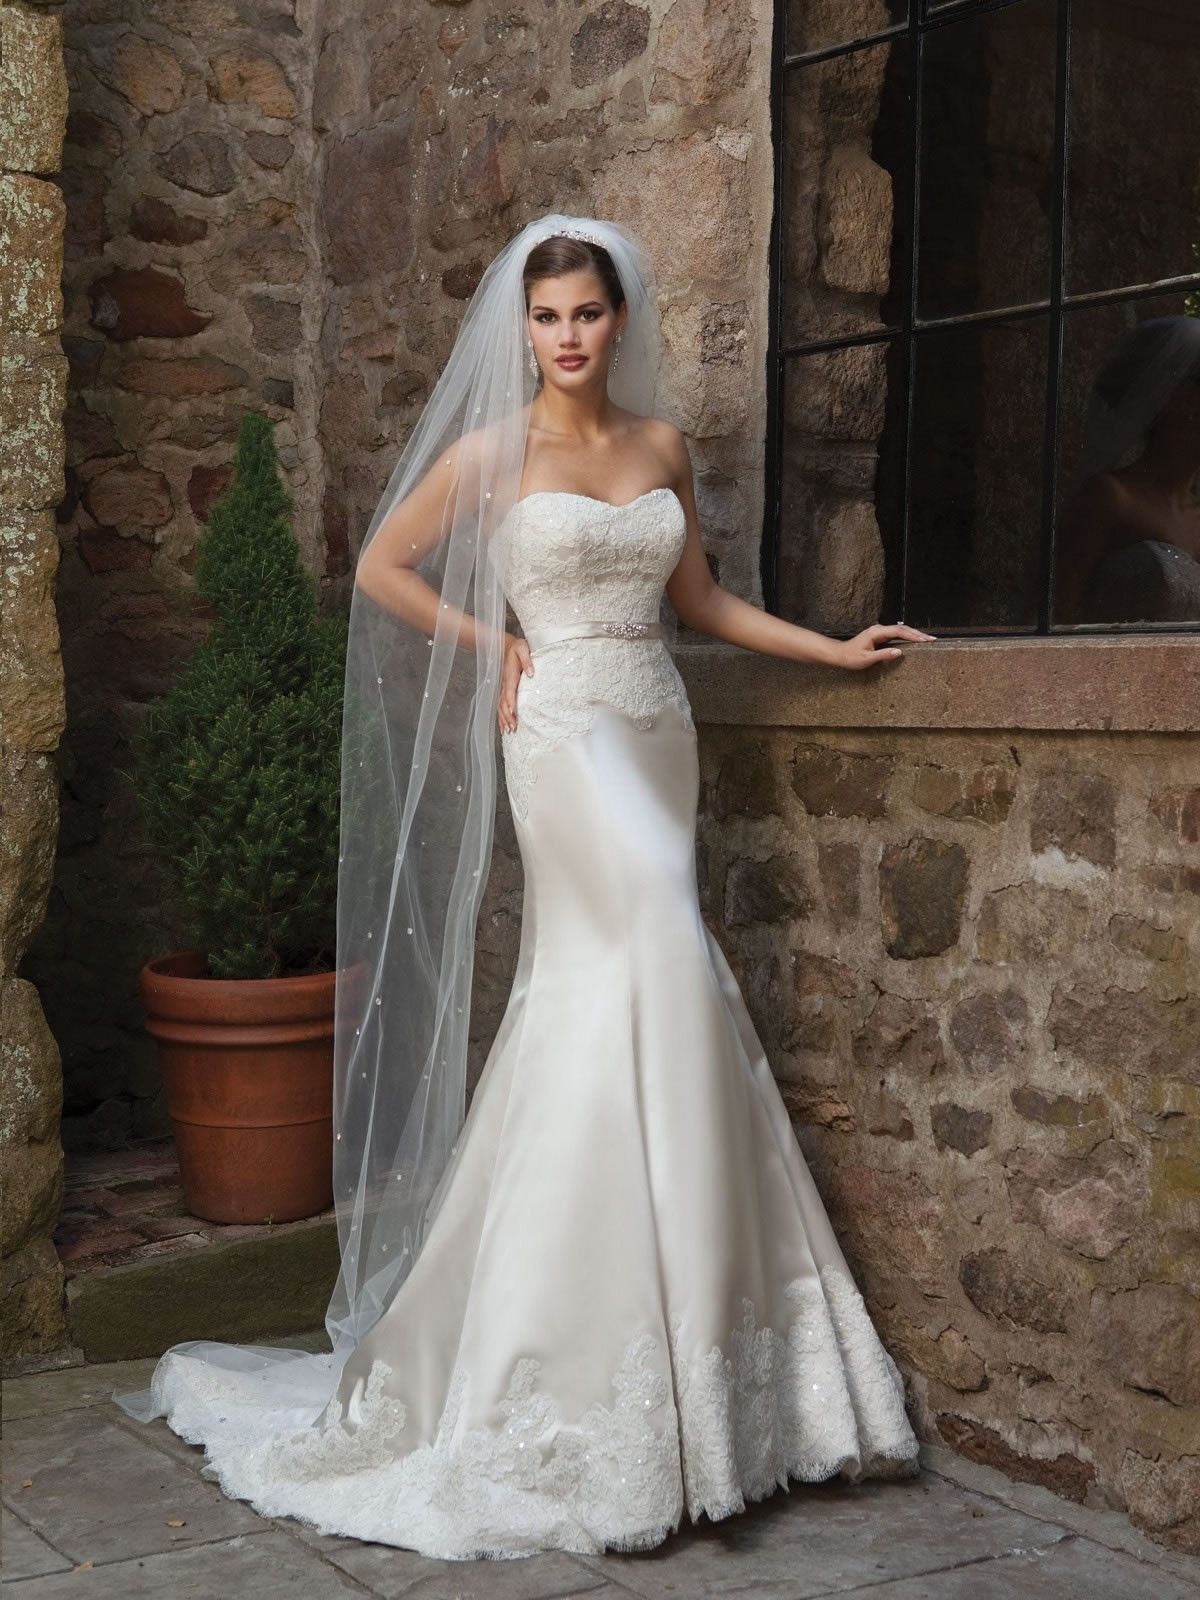 Wedding Wedding Dresses Mermaid satin sweetheart mermaid wedding dress dresses dress